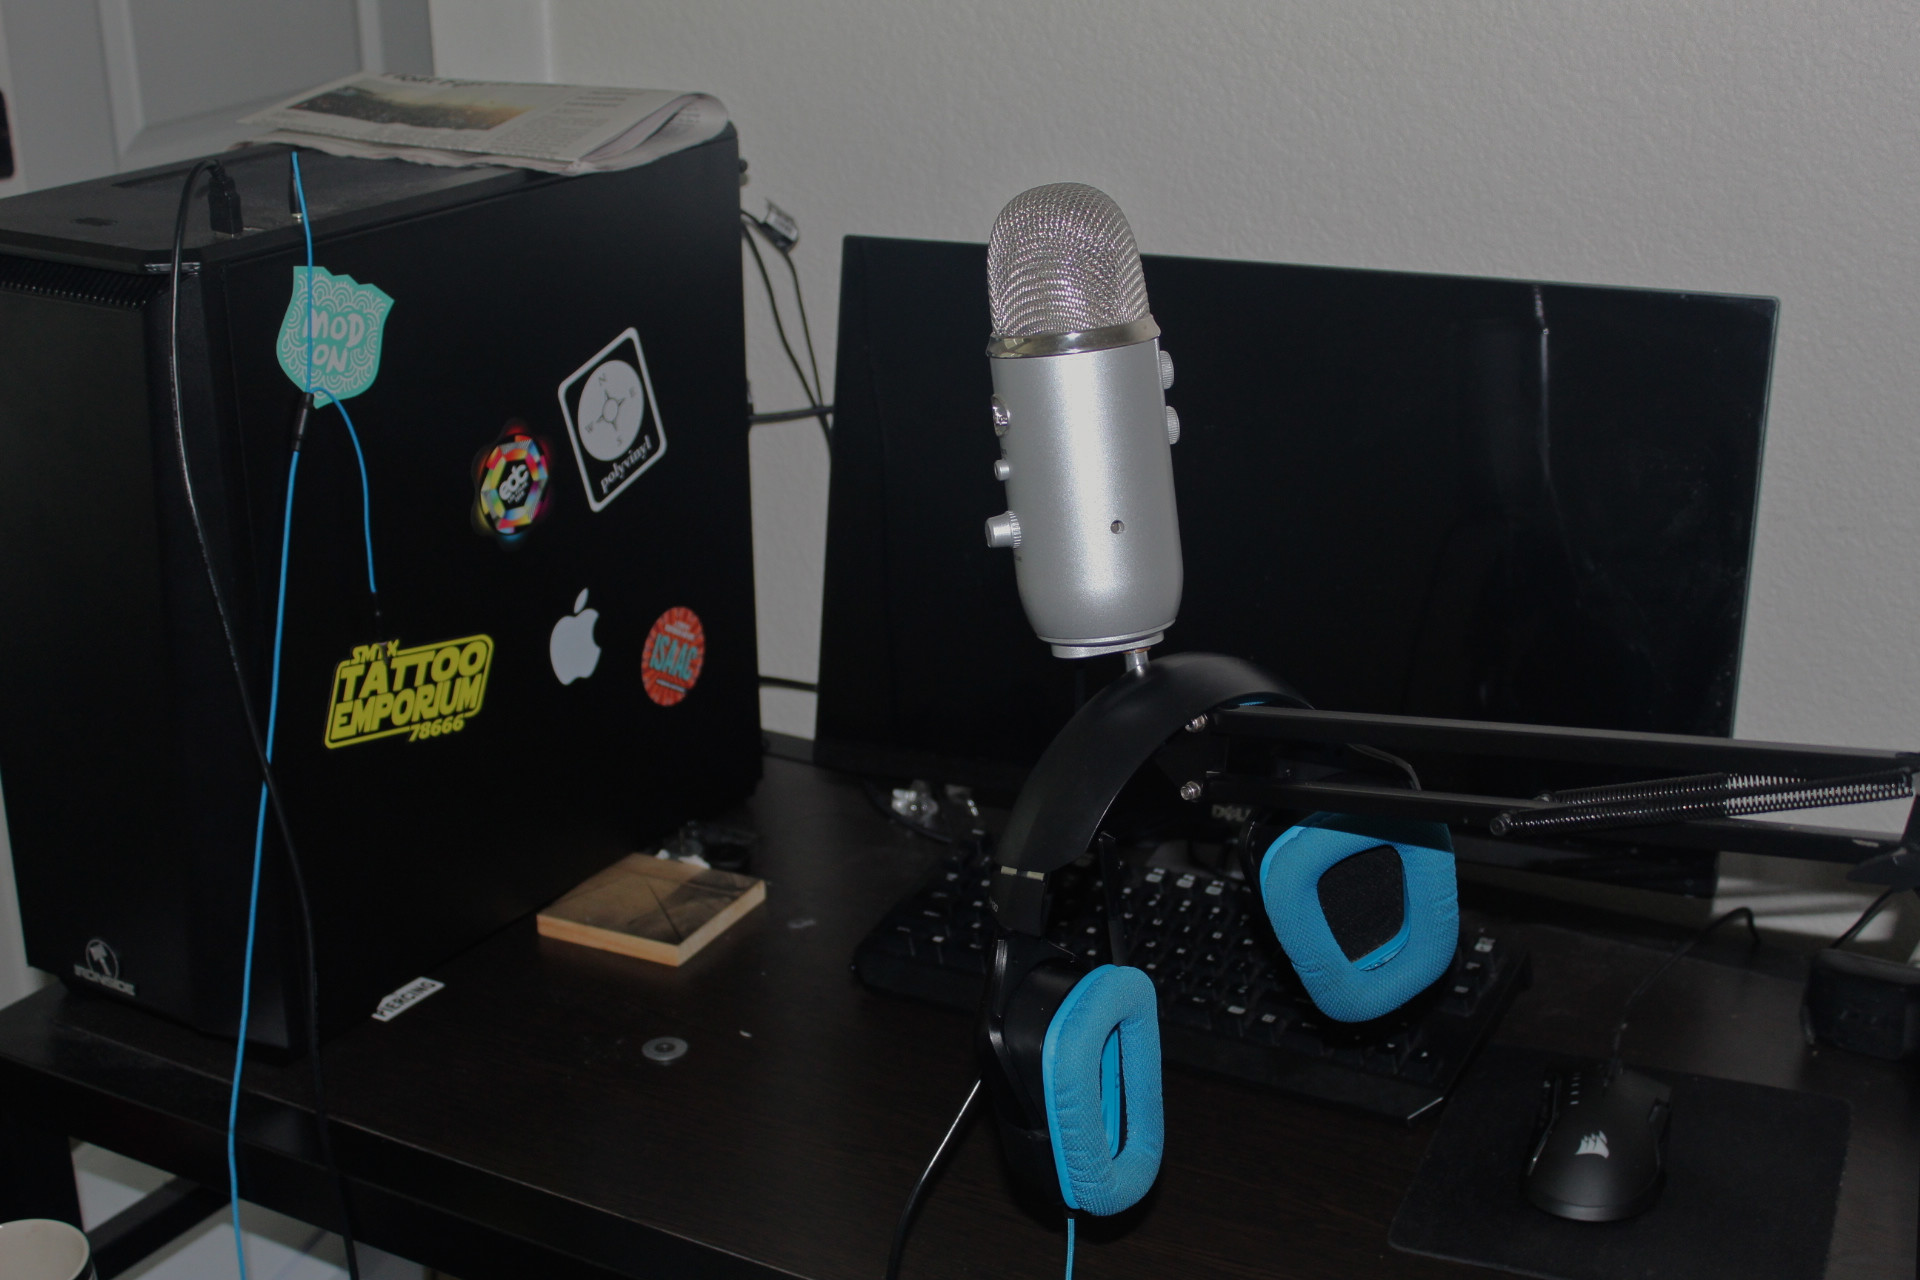 A desk with a computer, microphone and headset on it.